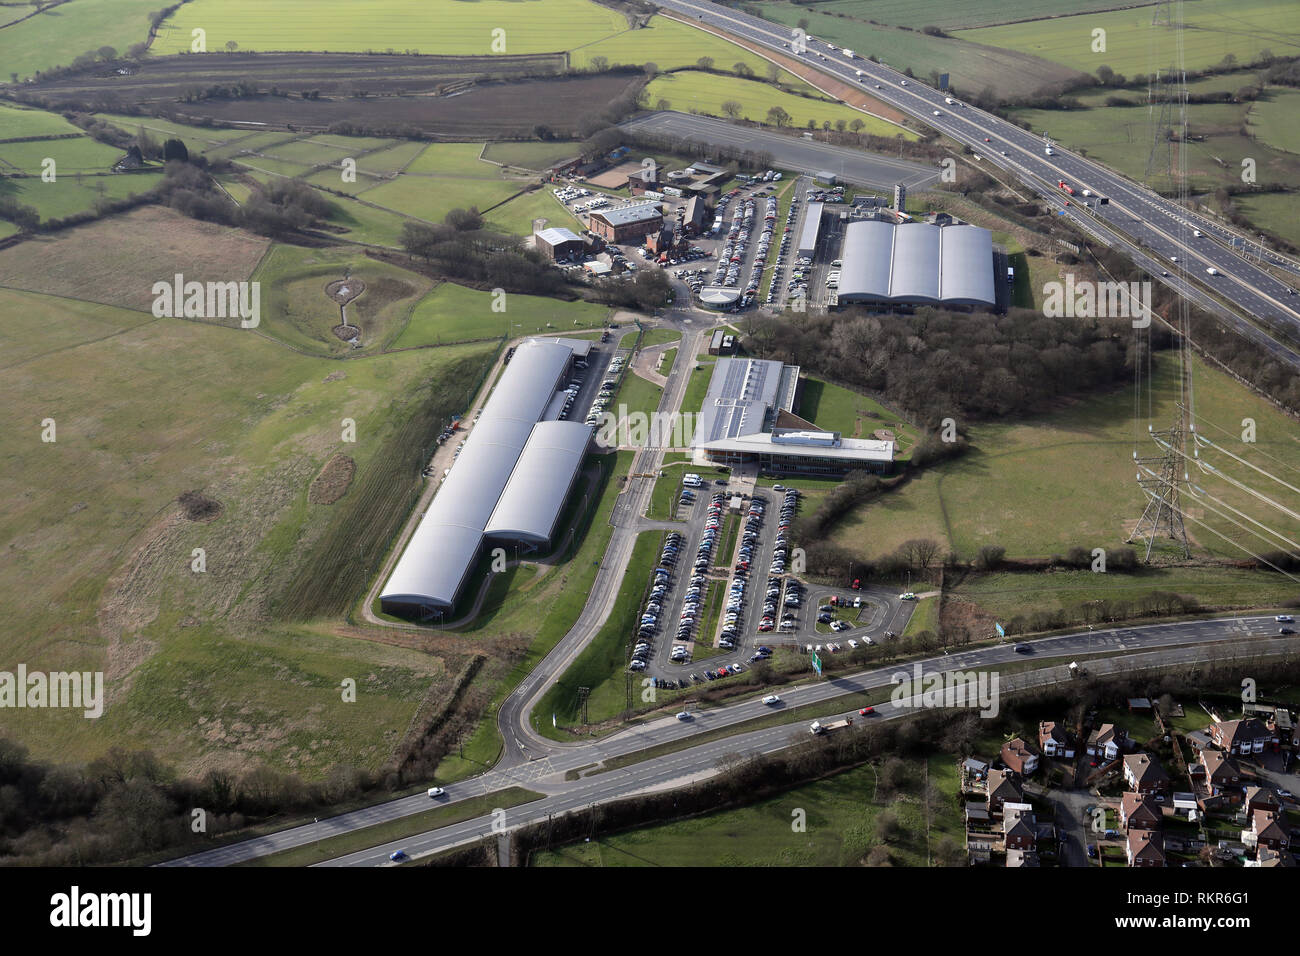 aerial view of West Yorkshire Police Training & Development Centre at Carr Gate, Wakefield - Stock Image